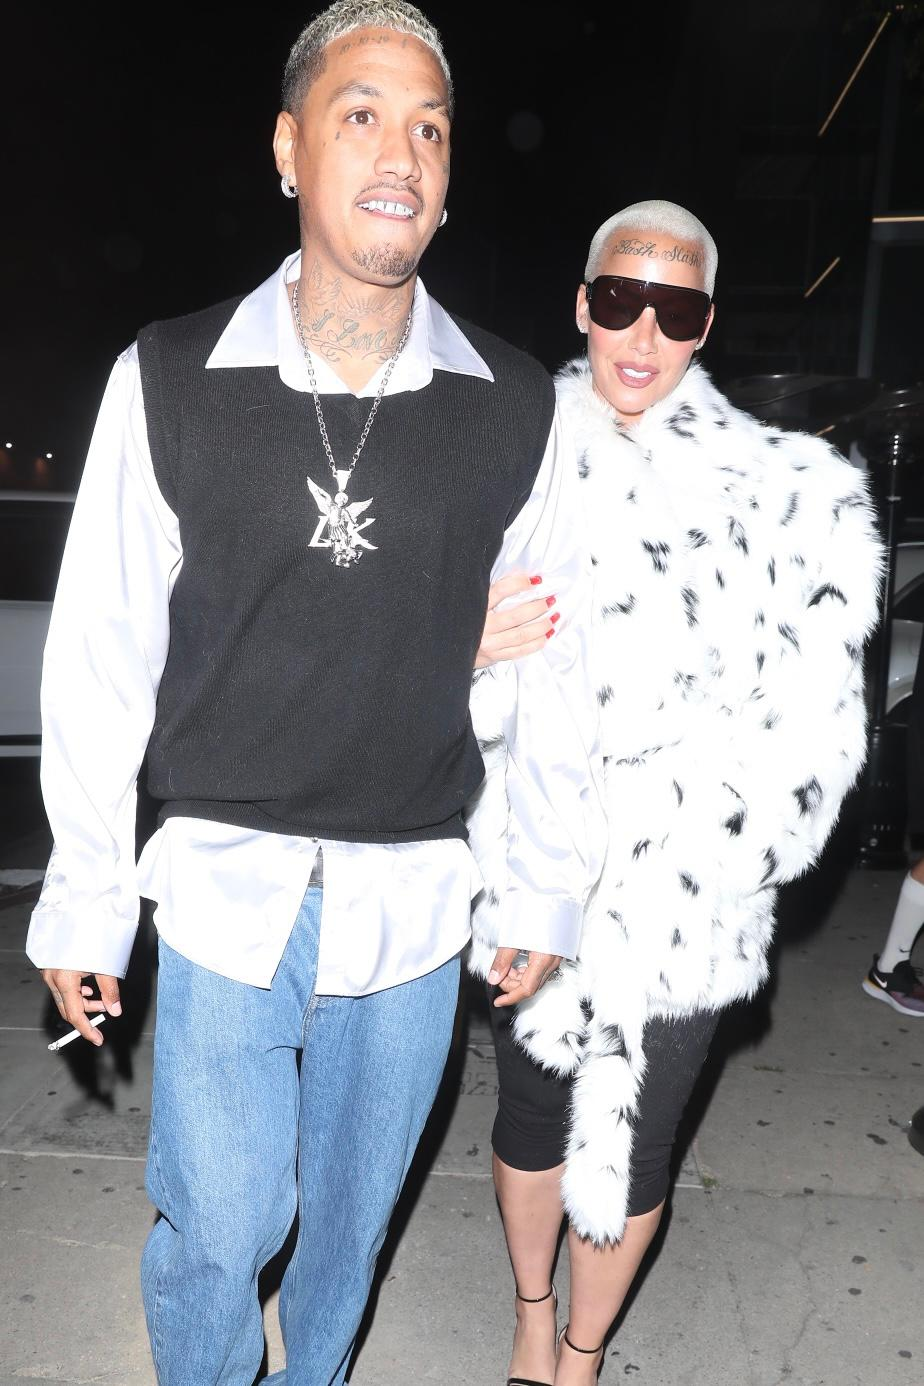 Amber Rose DUMPS Boyfriend On Instagram, Accuses Him Of Cheating With 12 Women!